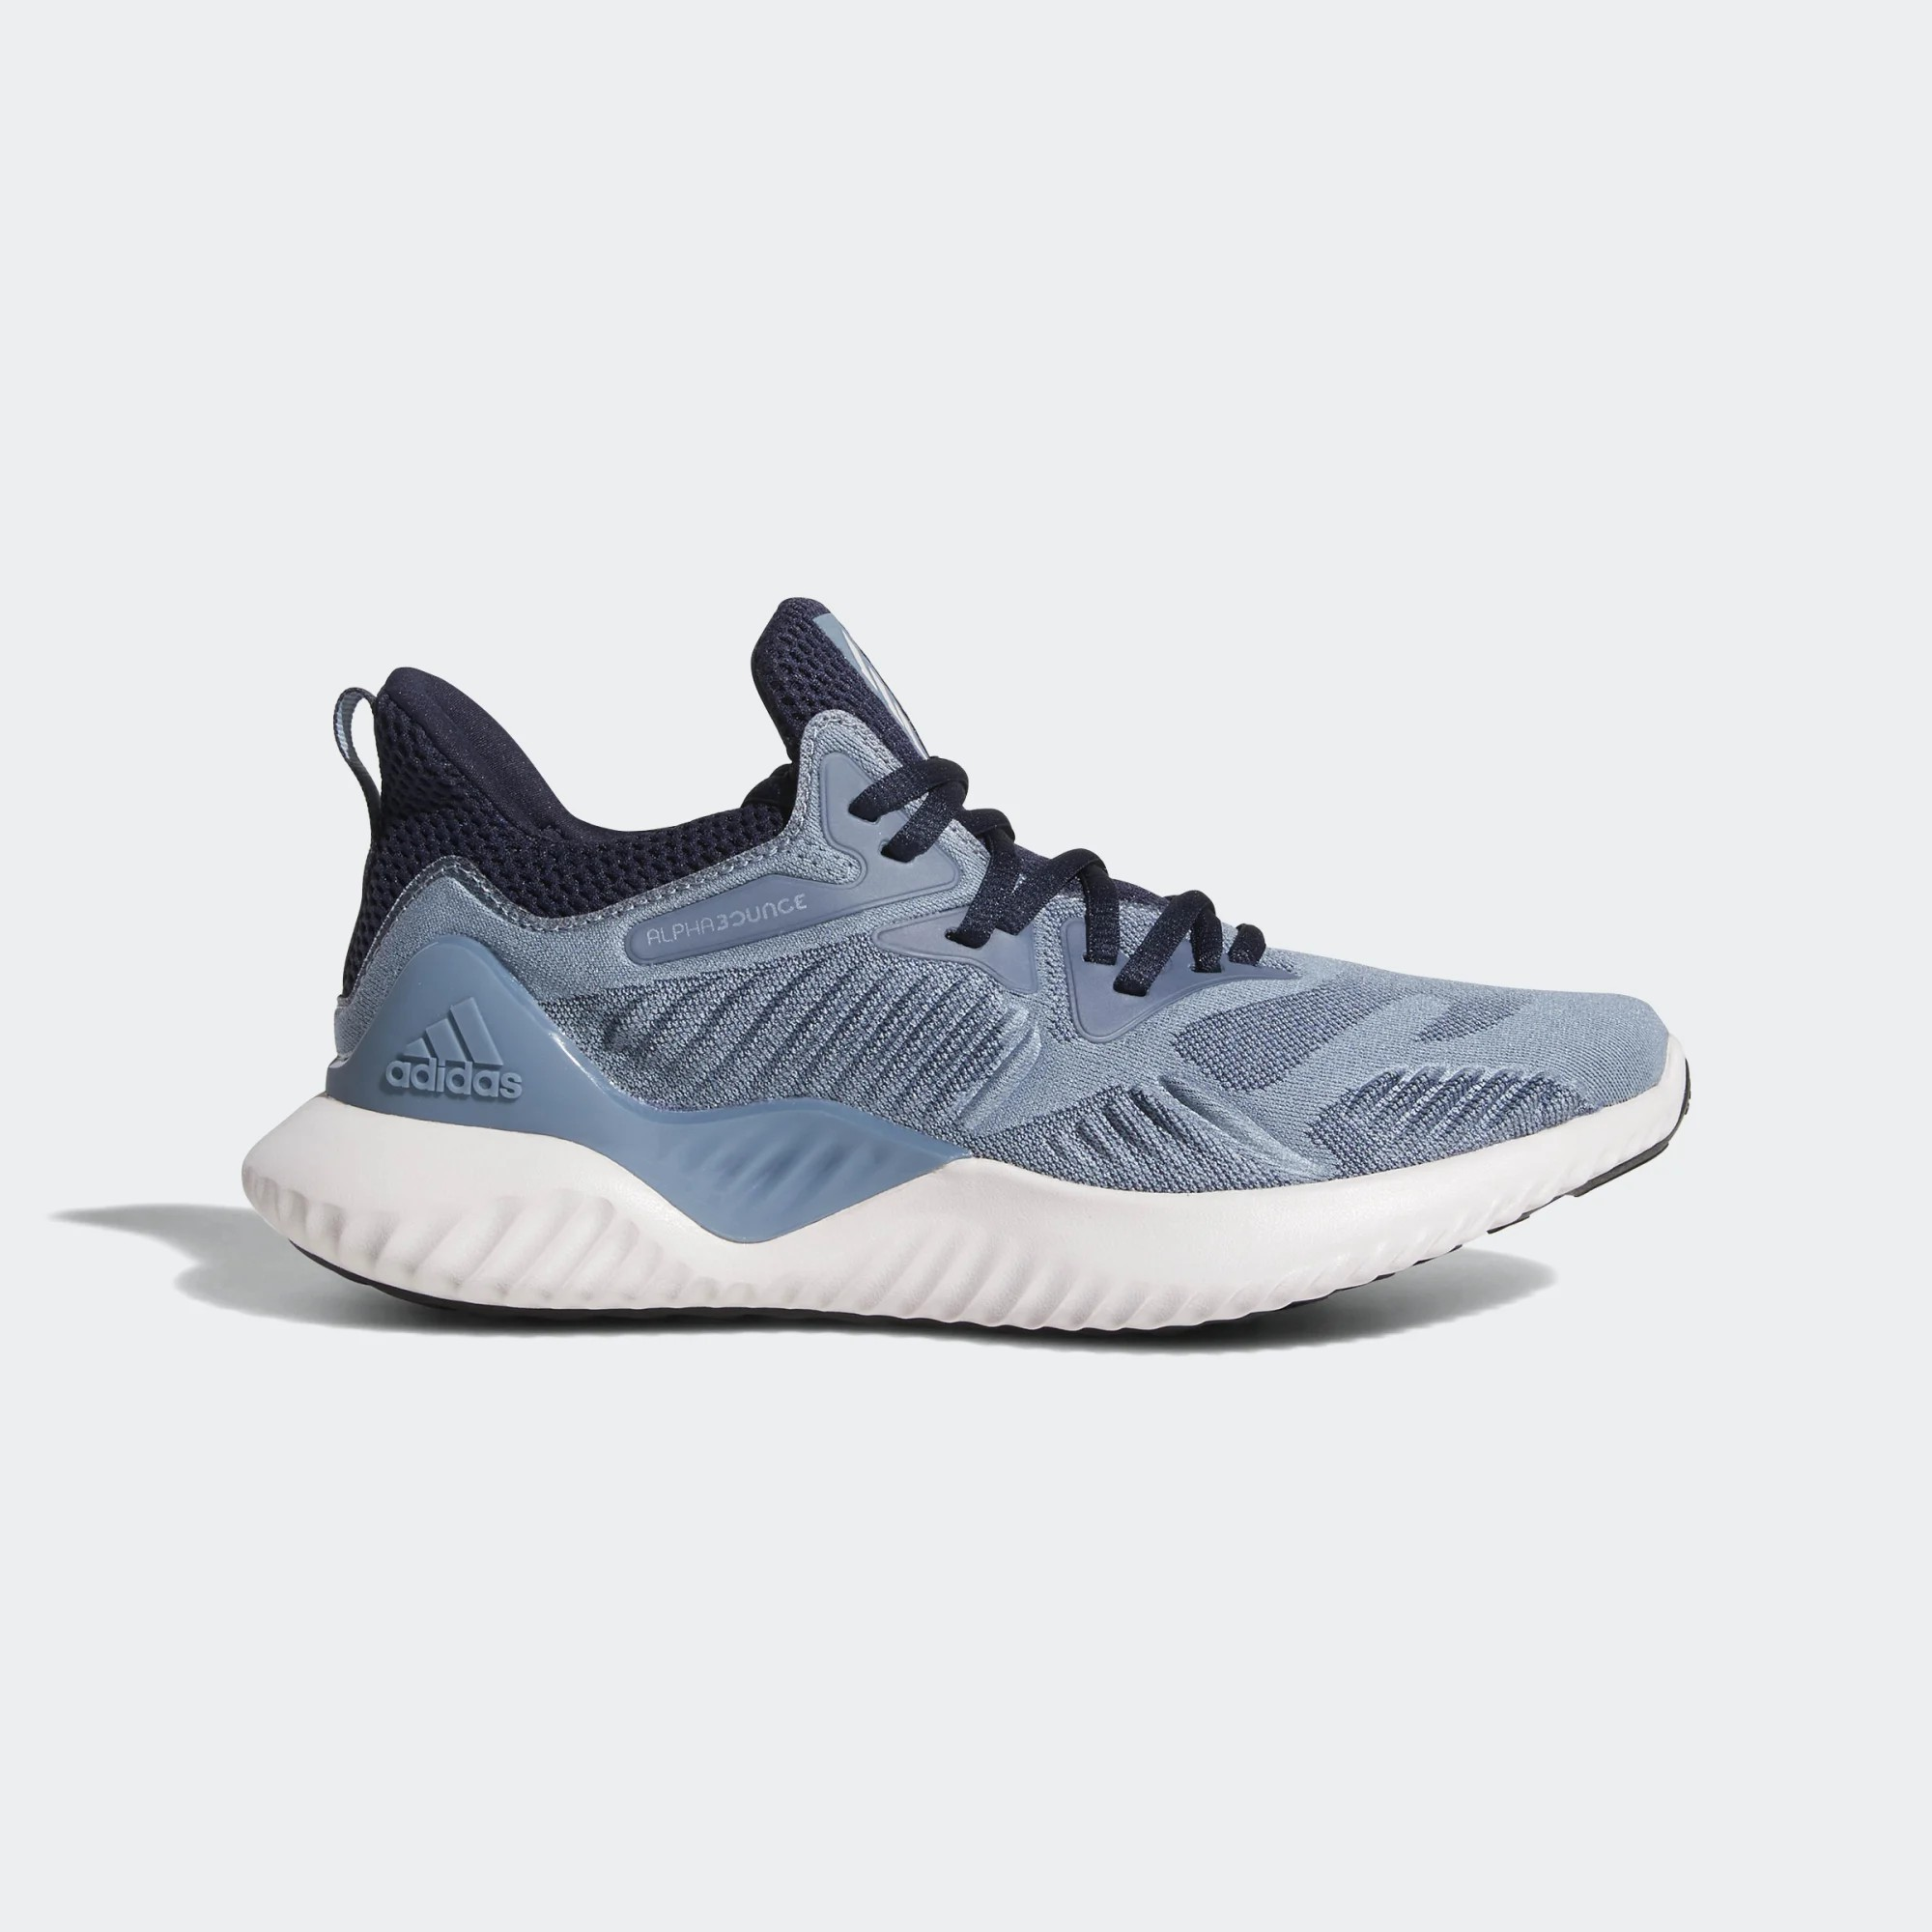 Wmns Alphabounce Beyond 'Raw Grey' Blue adidas CG5580